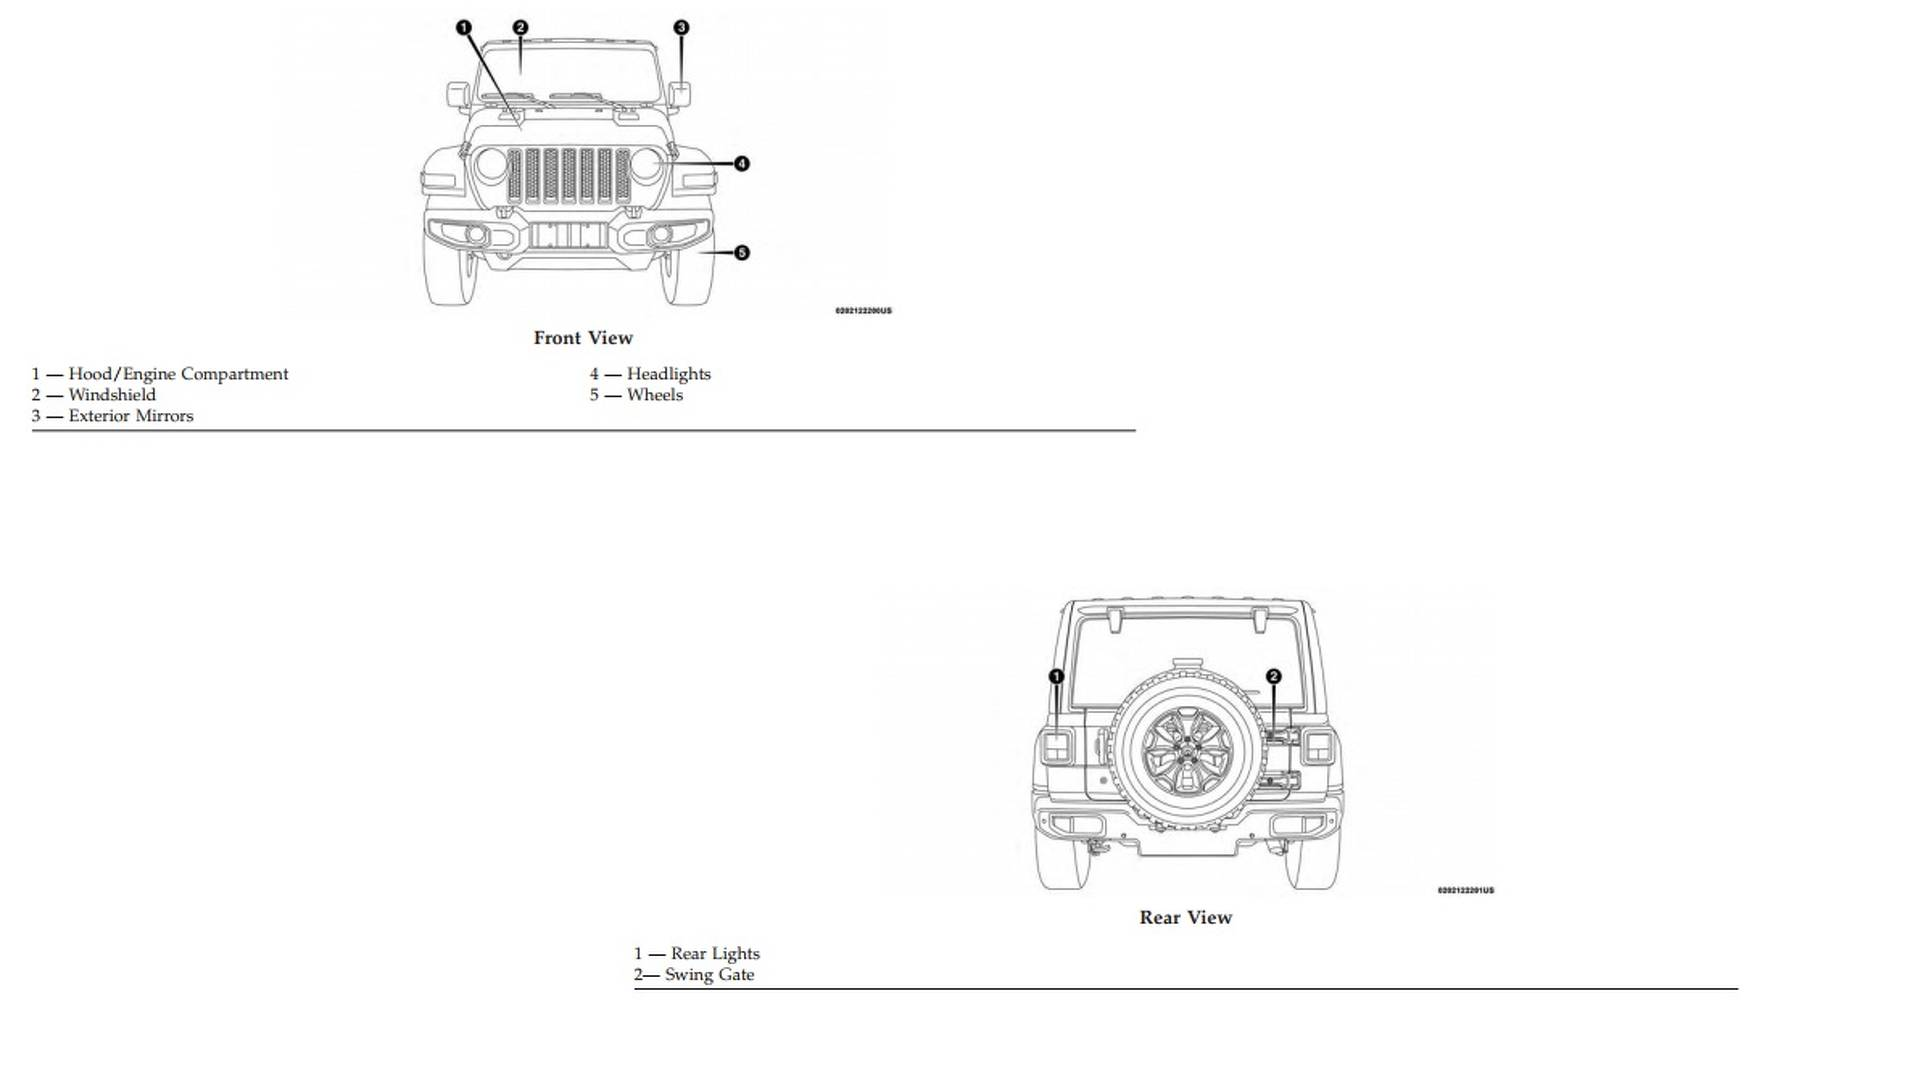 1991 toyota previa engine diagram html